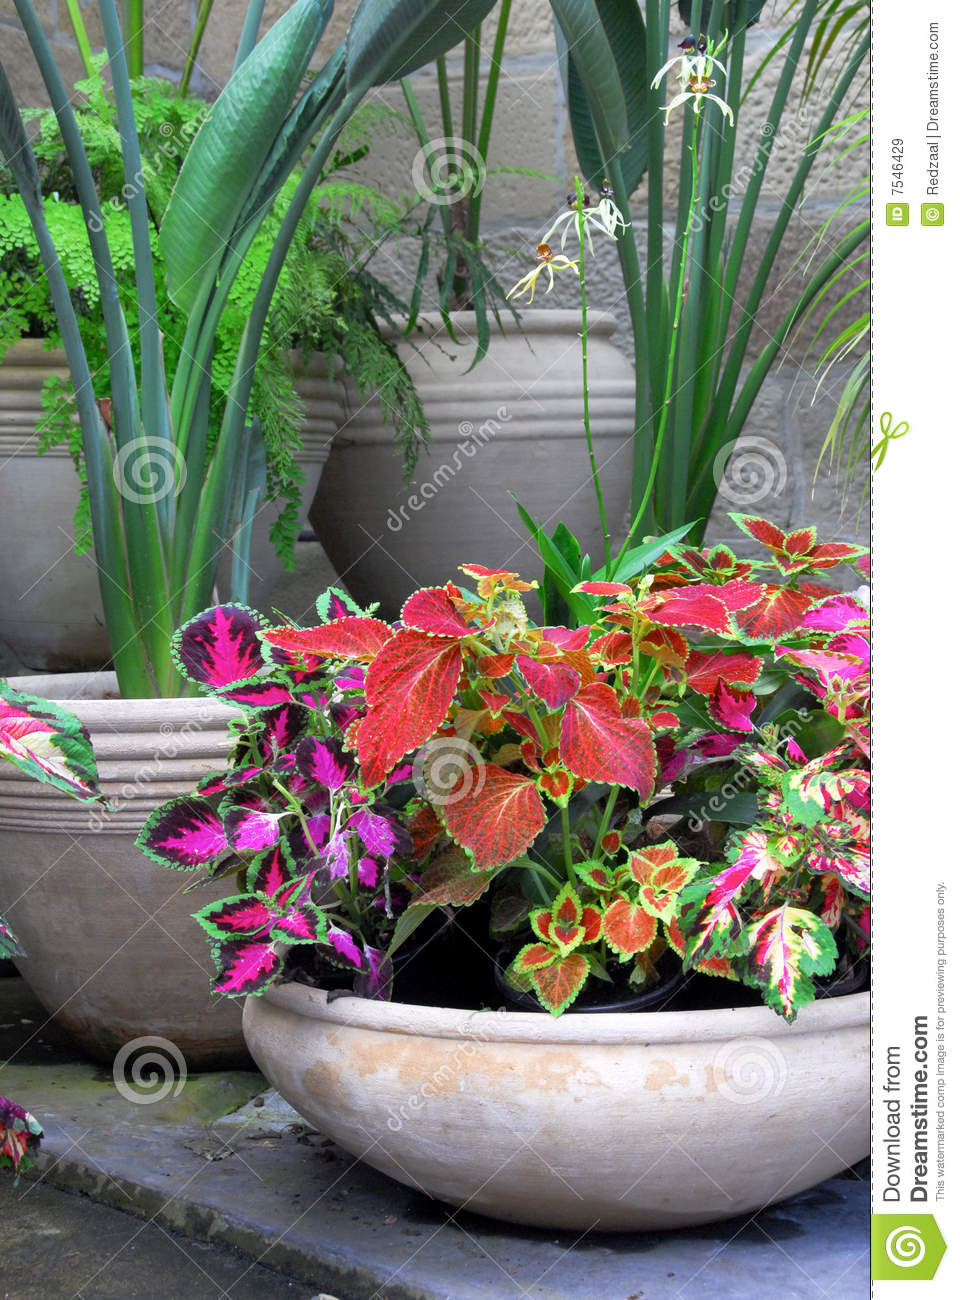 Garden Pots With Coleus Plants Stock Image Image Of Floral Indoor